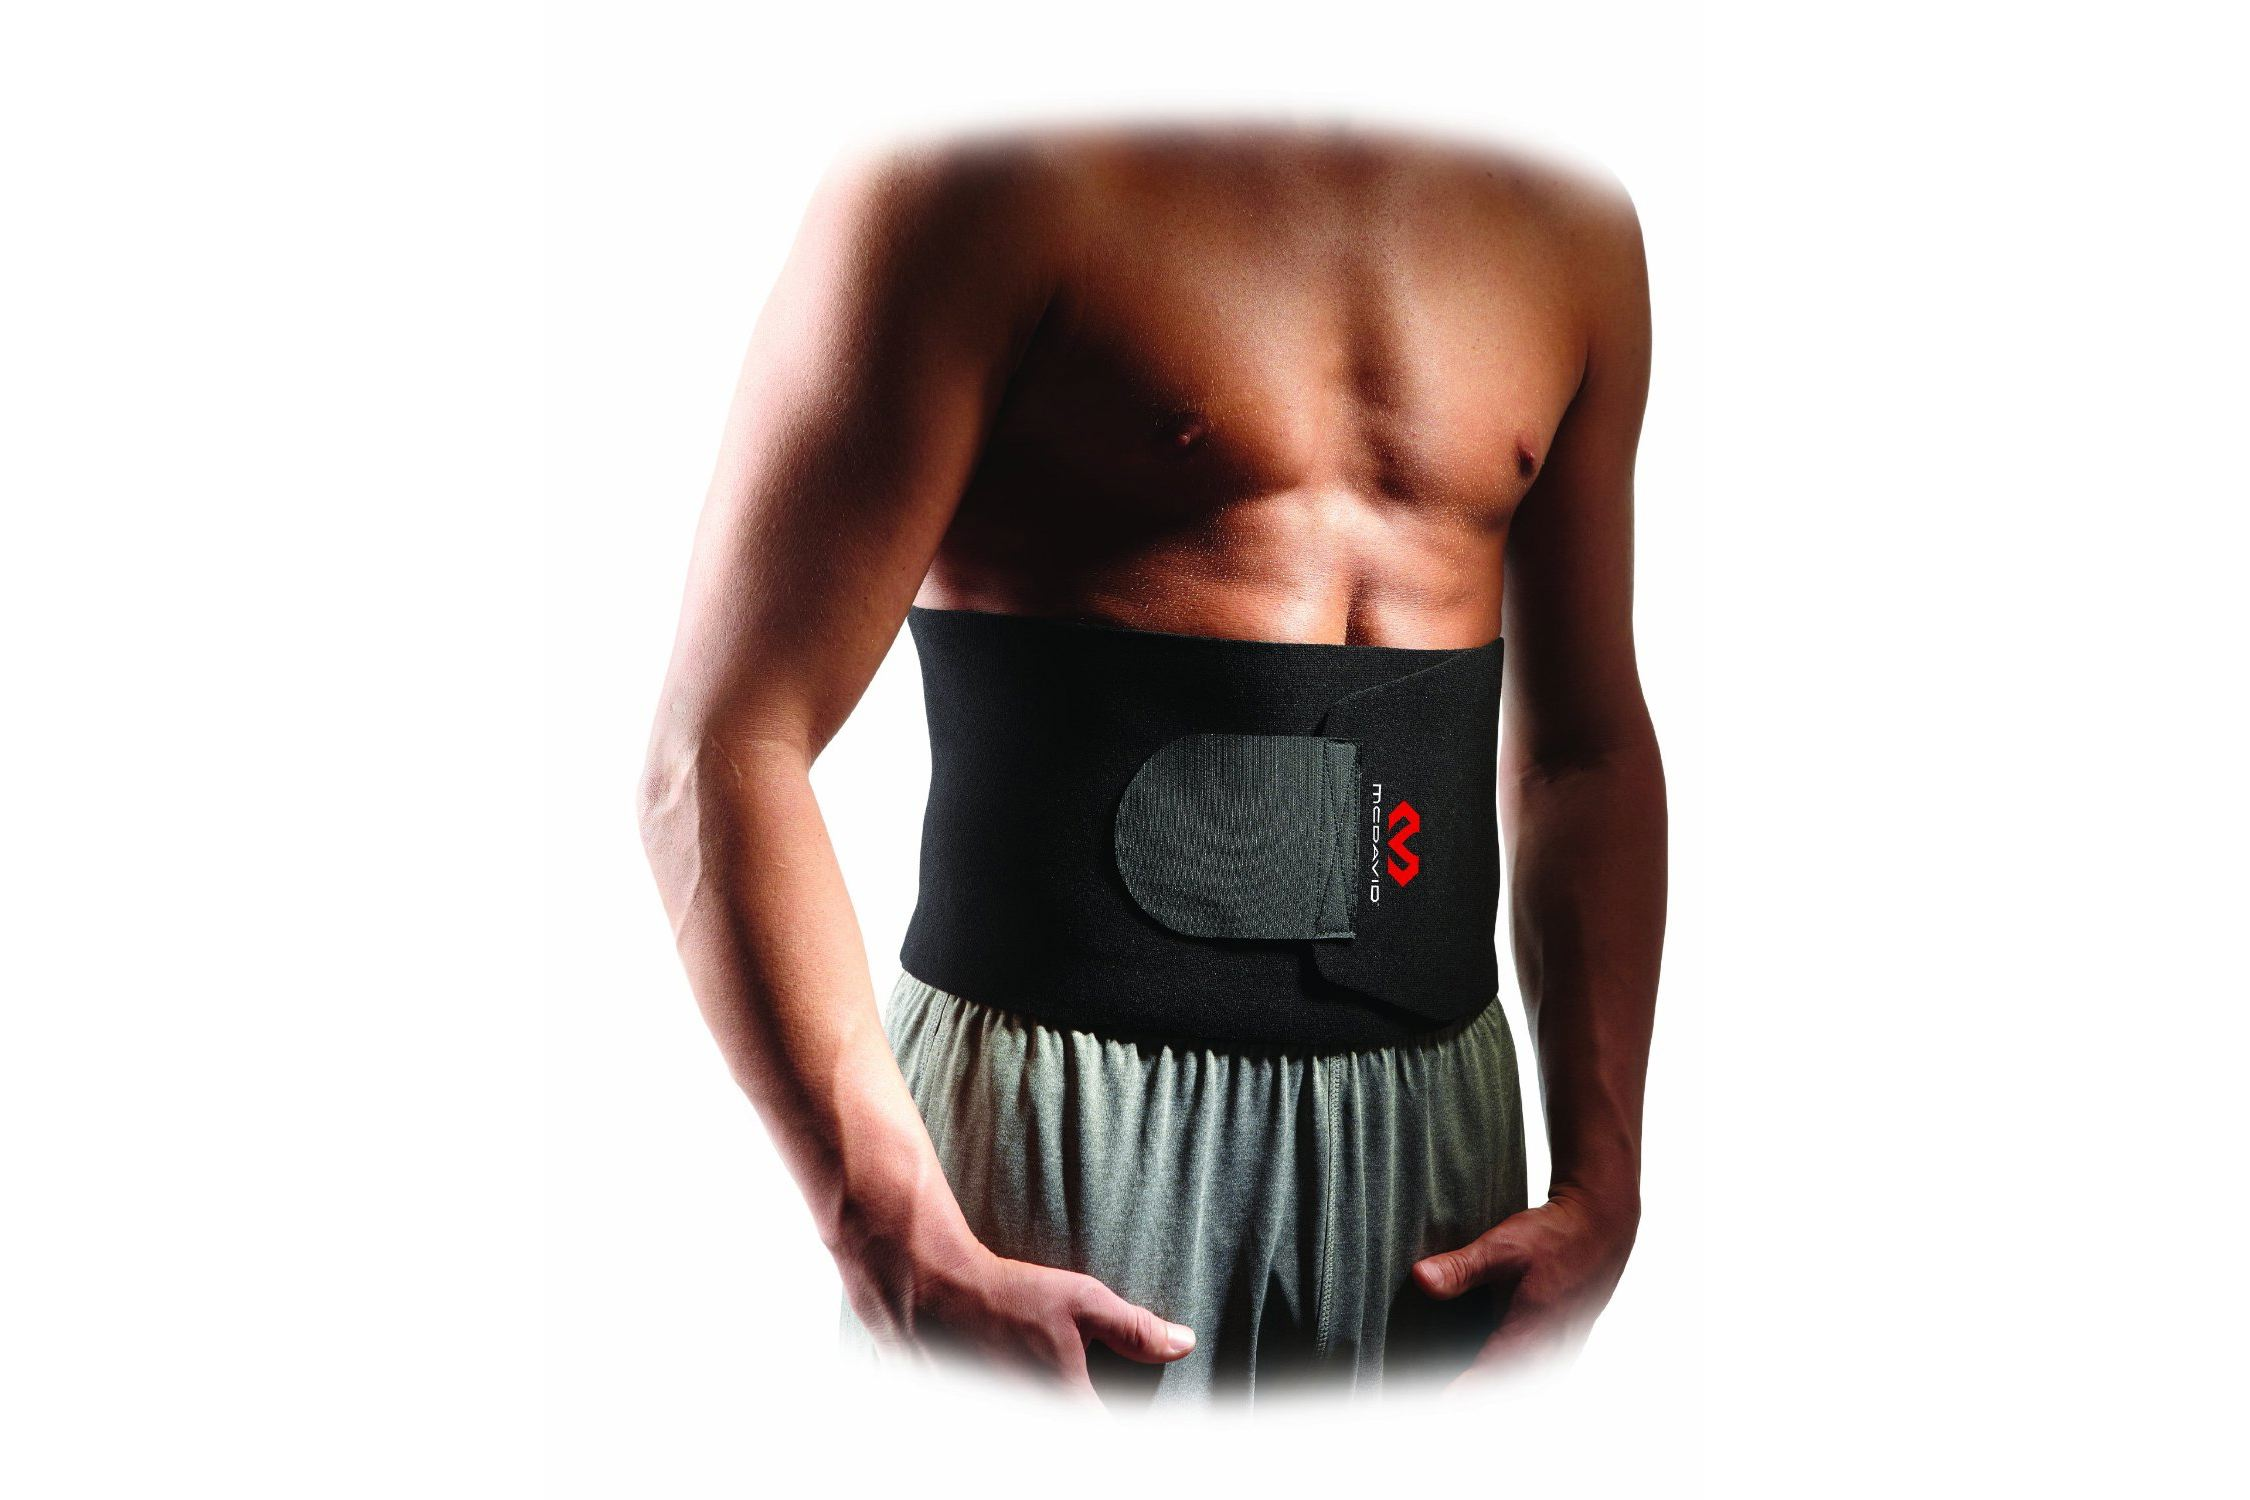 McDavid Waist Trimmer Review